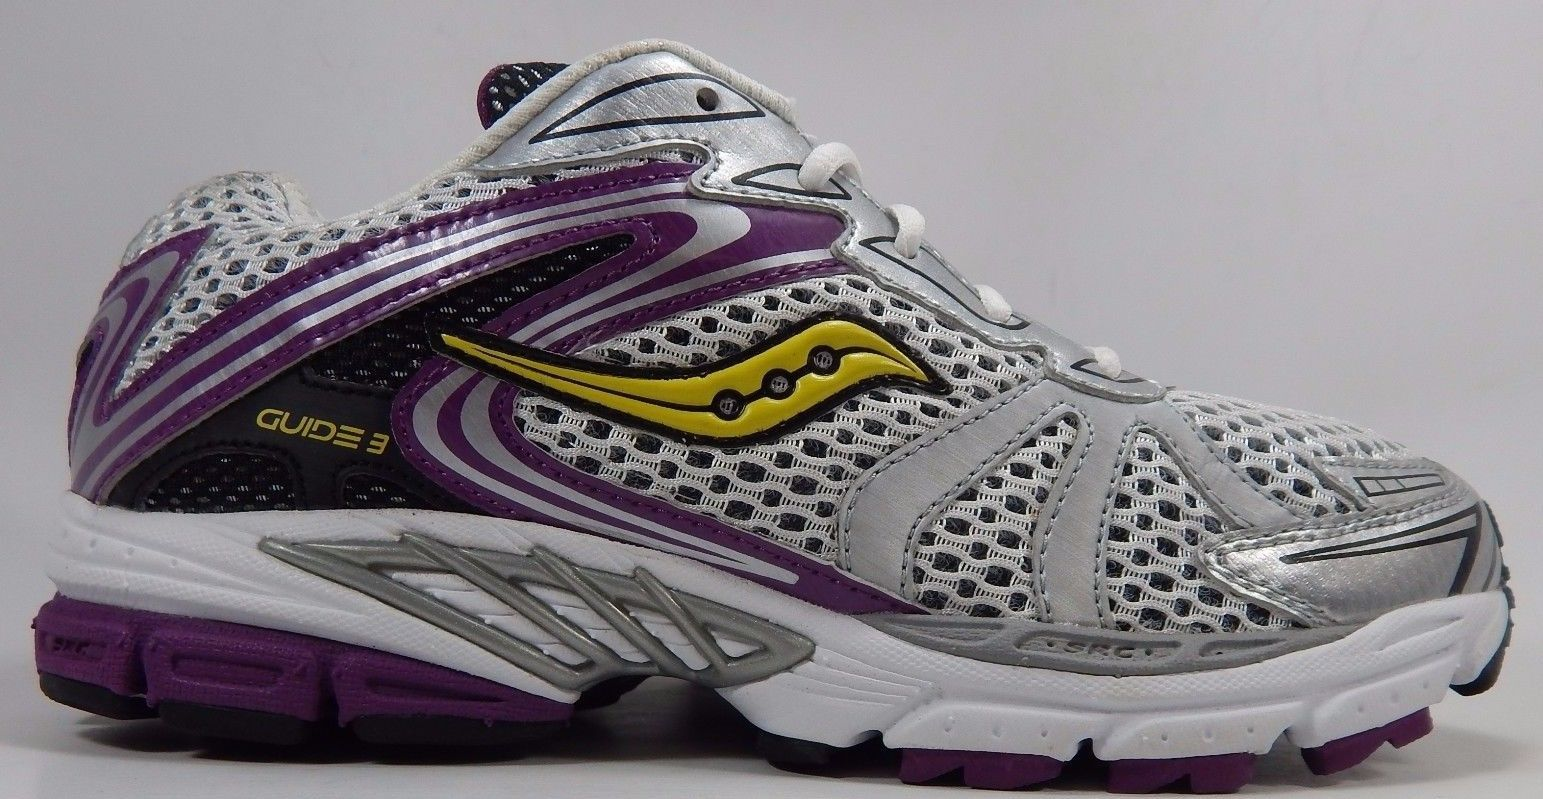 Saucony Guide 3 Girl's Youth Shoes Size US 7 M (B)  (7 Y) EU 39.5 Silver 80019-4